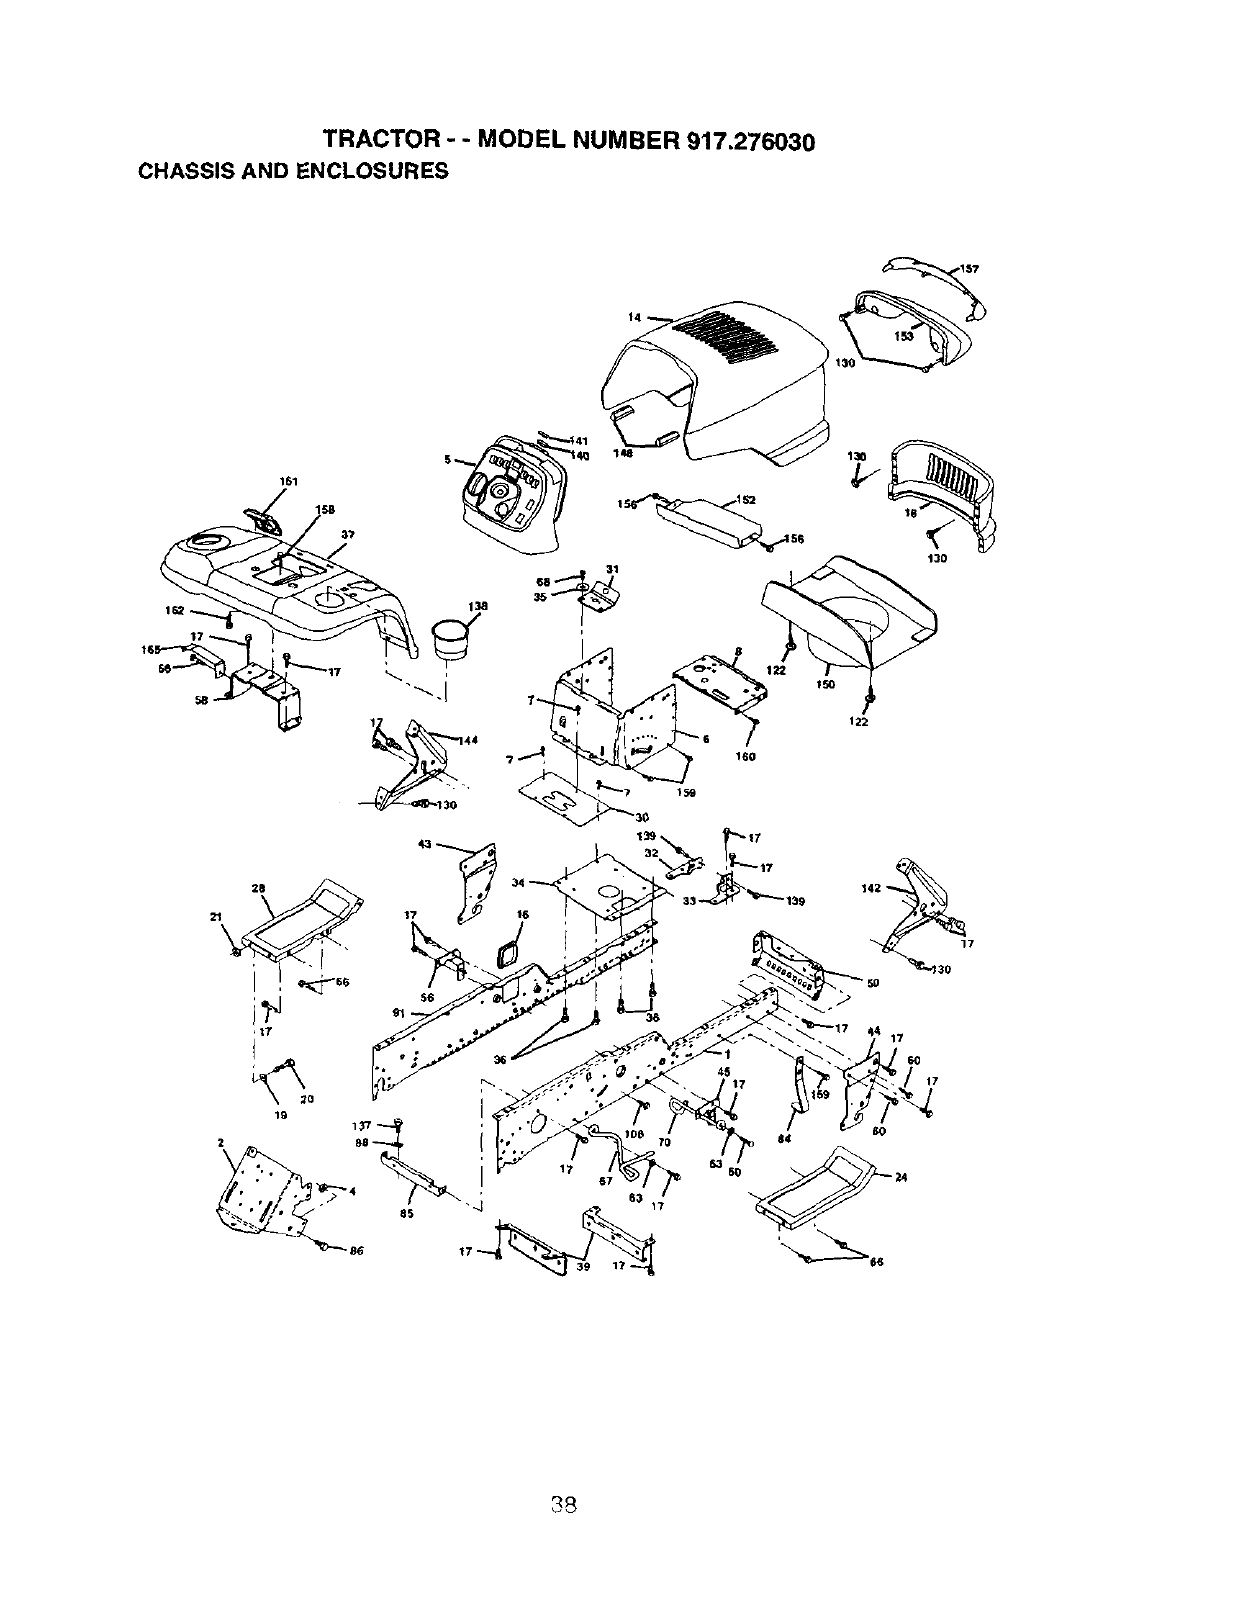 Page 38 of Craftsman Lawn Mower 917.27603 User Guide